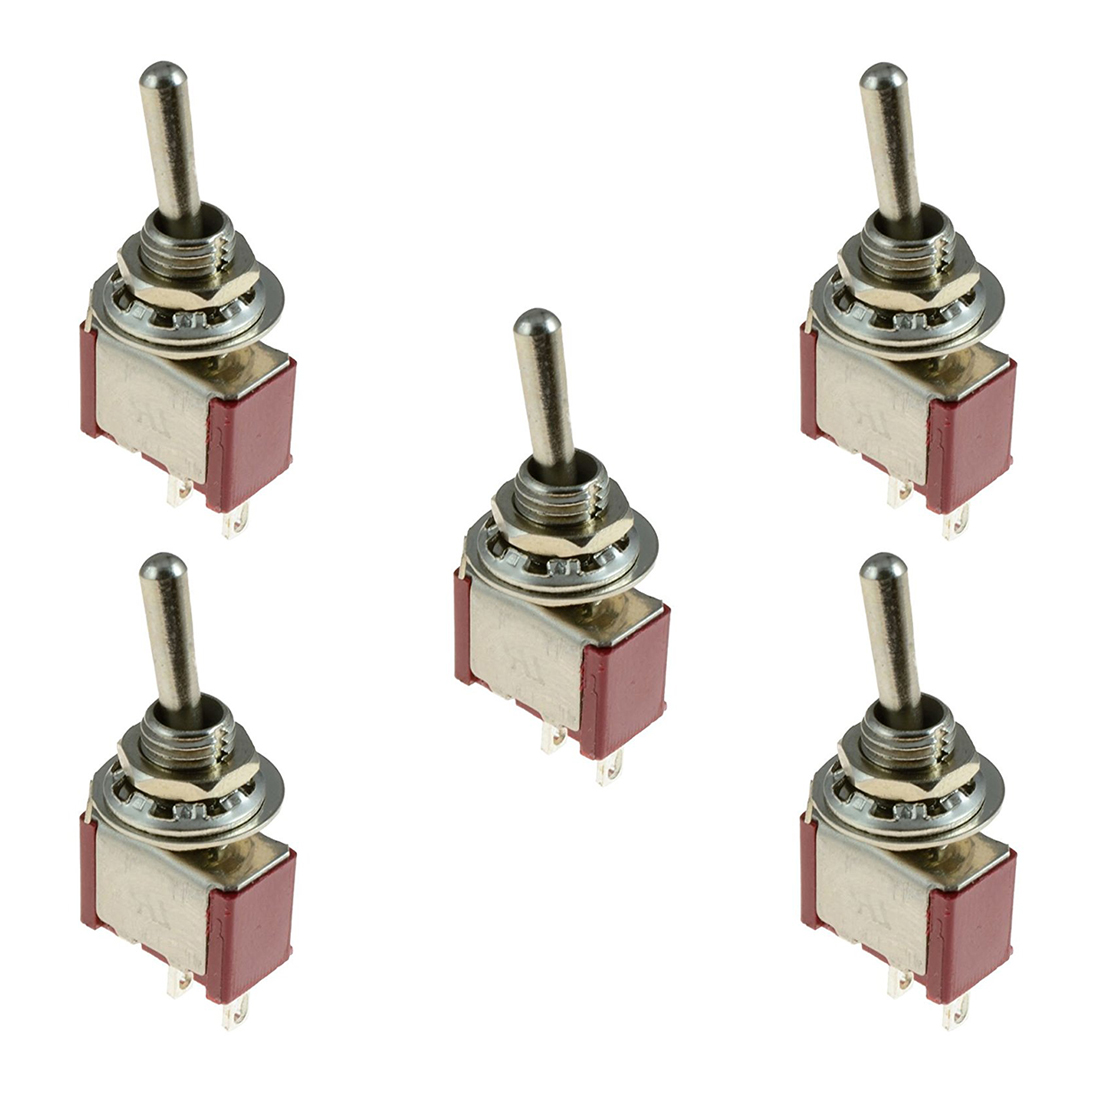 5 x On/Off Small Toggle Switch Miniature SPST 6mm - AC250V 3A 120V 5A 5 x on off small toggle switch miniature spst 6mm ac250v 3a 120v 5a